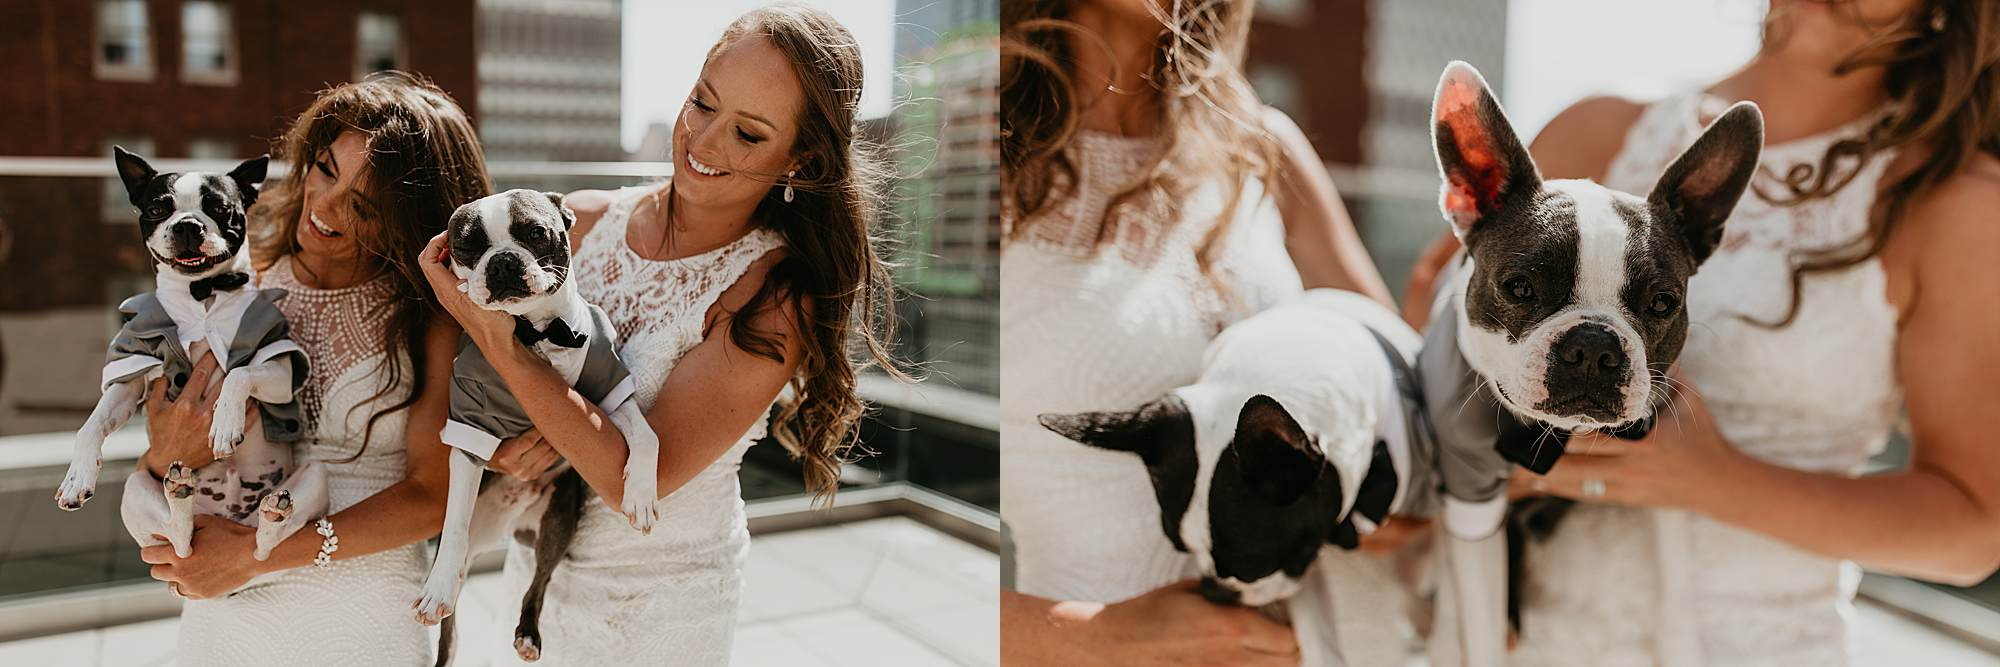 PIttsburgh Wedding Photography, Pittsburgh Gay Wedding, Dogs in suits